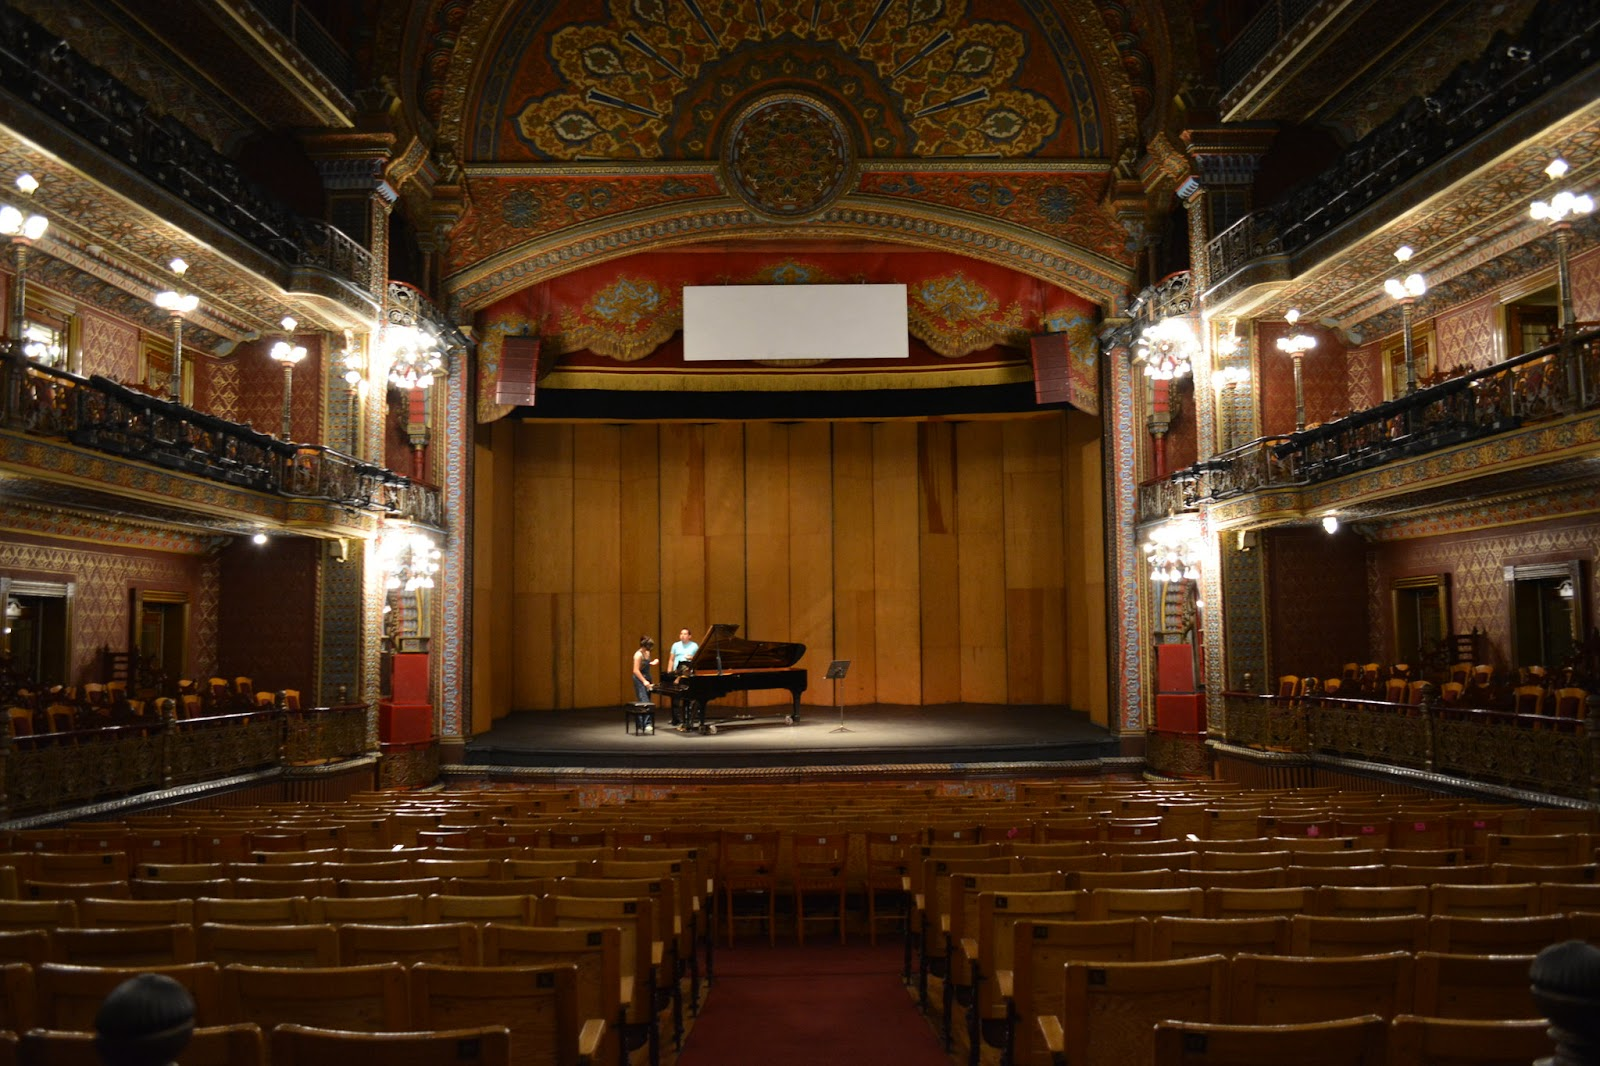 Best Places to Visit in Guanajuato, Mexico by travel blog, The Common Traveler: Inside of Juarez Theater in Guanajuato, Mexico